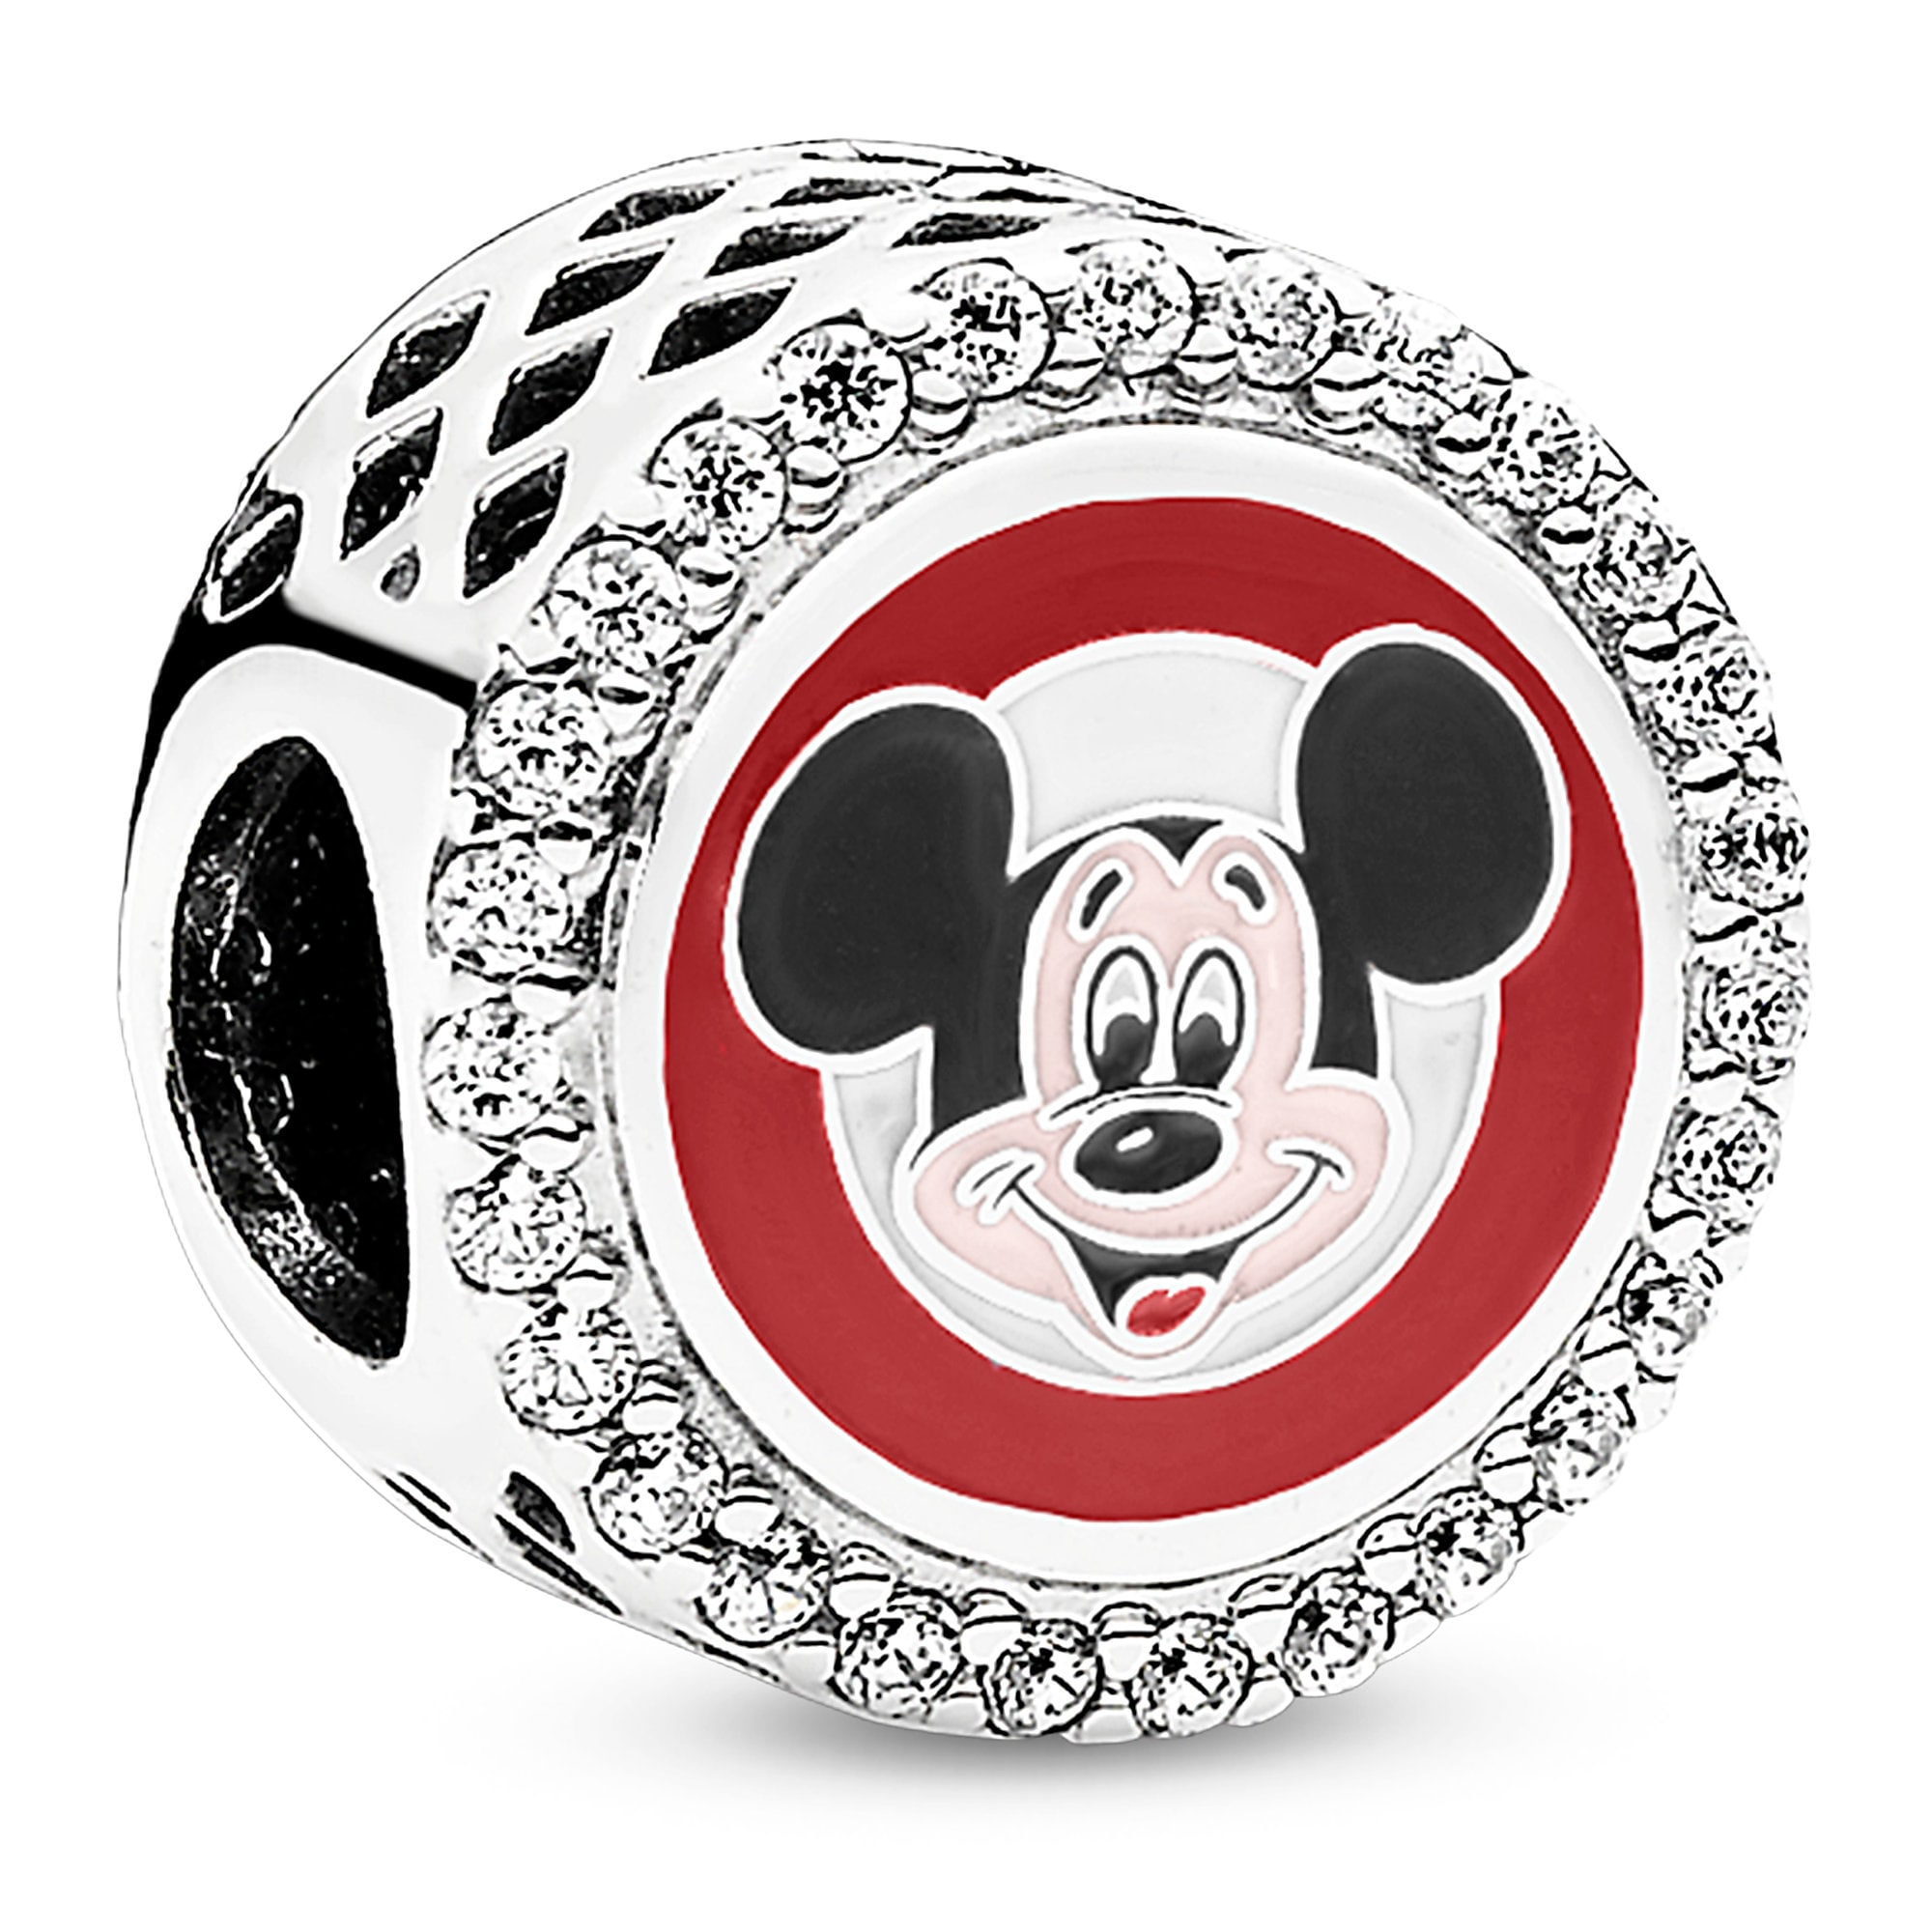 a6304e4e7 Mickey Mouse Club Charm by Pandora Jewelry released today